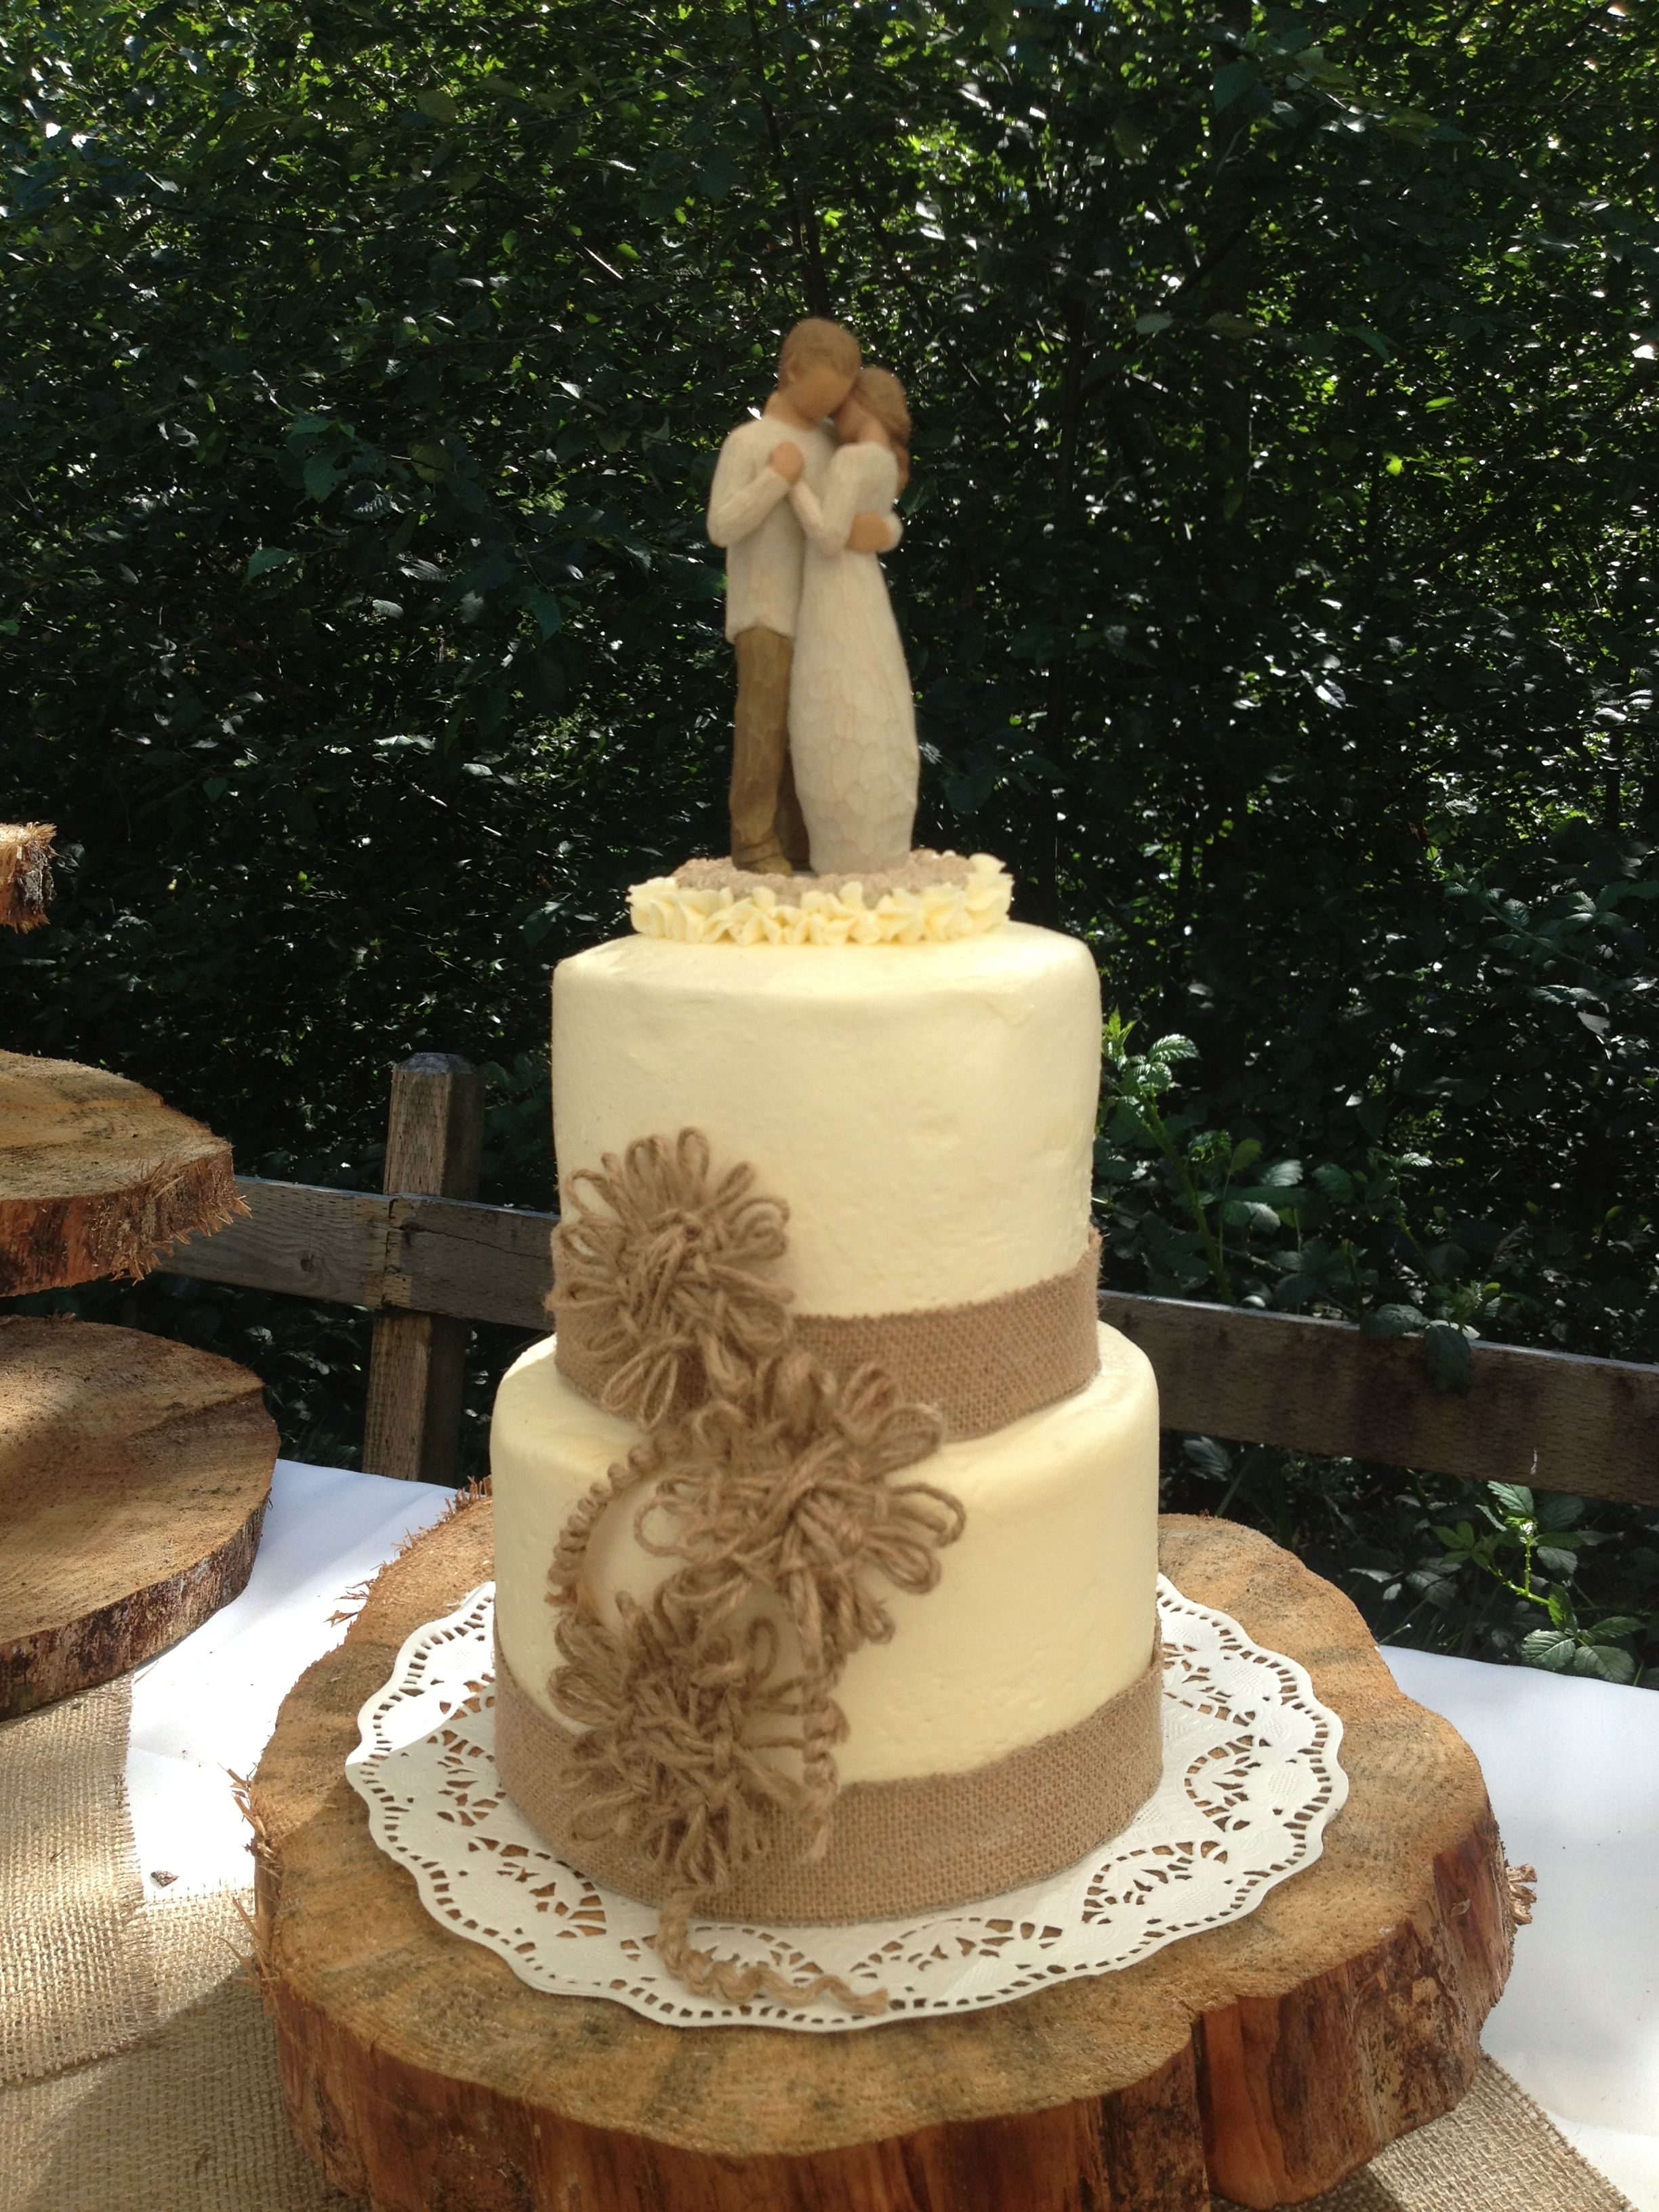 Rustic elegance wedding cake with burlap lace and twine flowers